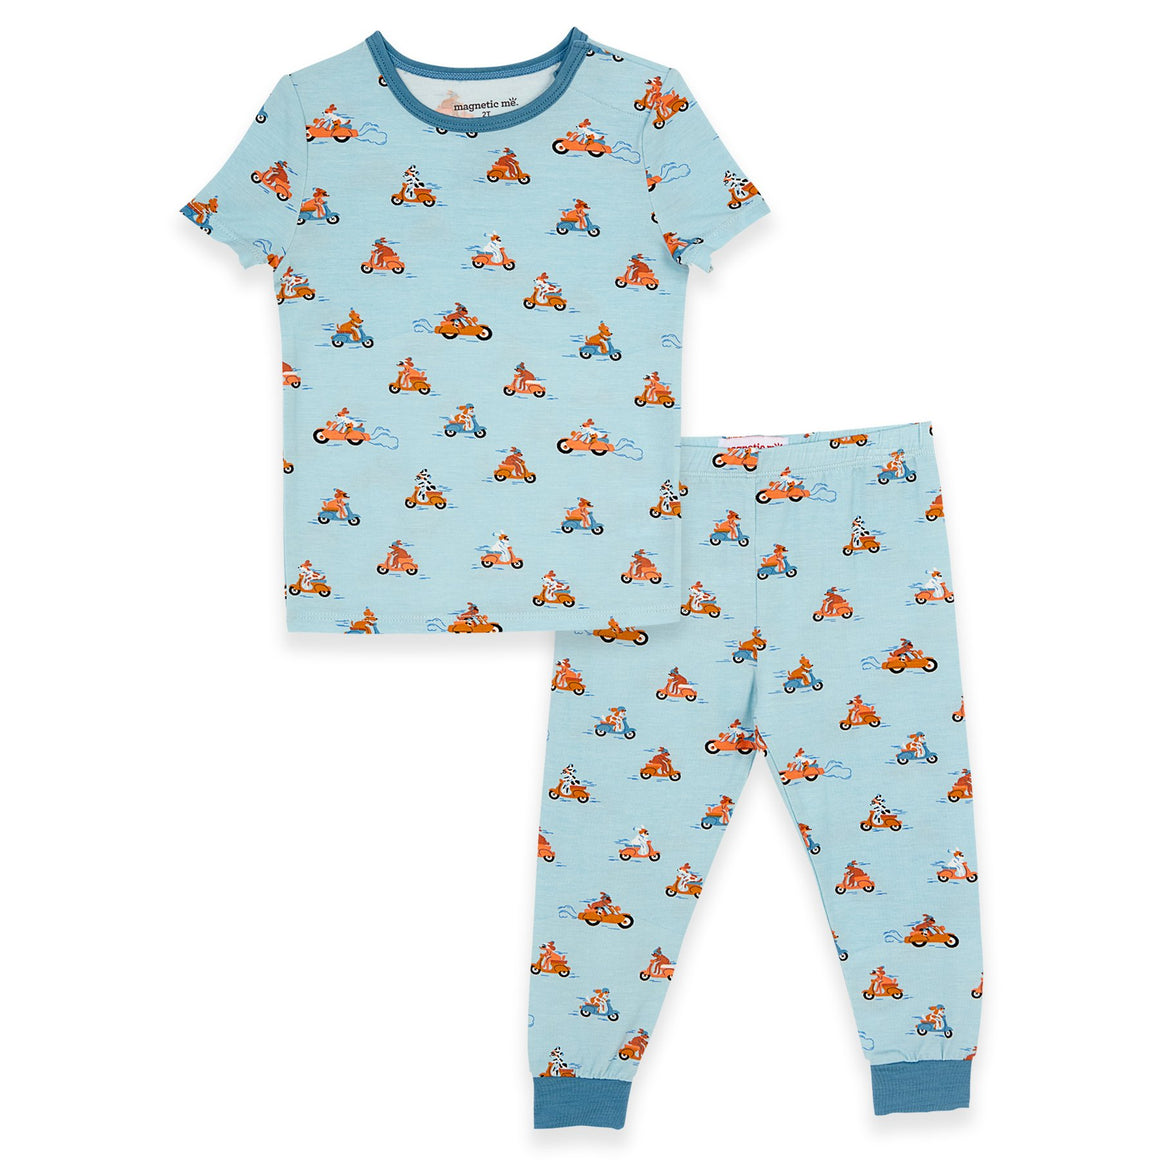 Magnetic Me | Easy Rider Modal Magnetic Toddler Pajama Set - COMING SOON